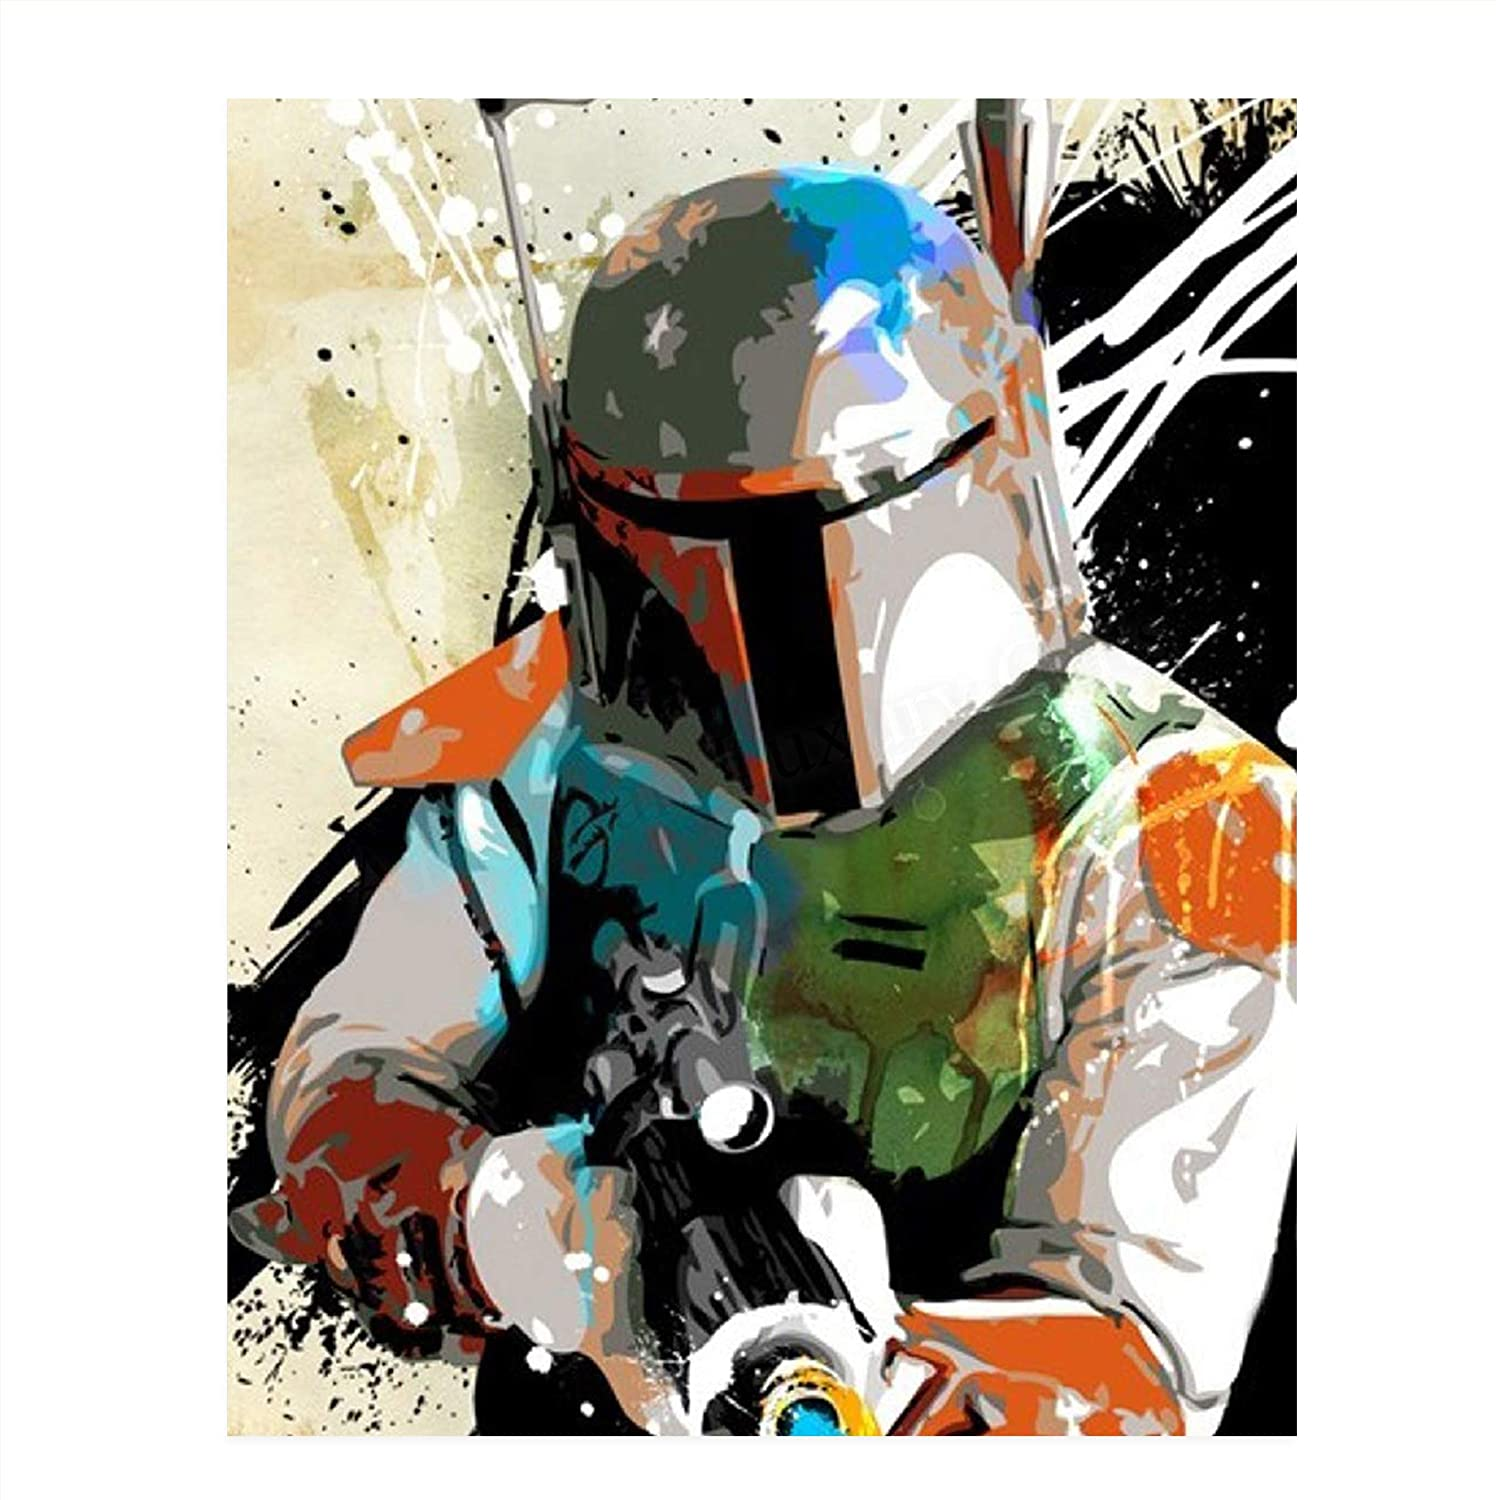 "Star Wars- Boba Fett Abstract Poster Print-8 x 10"" Wall Art Print. Modern Space Art- Ready to Frame. Star Wars Decor for Home-Office-Man Cave-Theater Room-Dorm. Perfect Gift for Star War Fans."